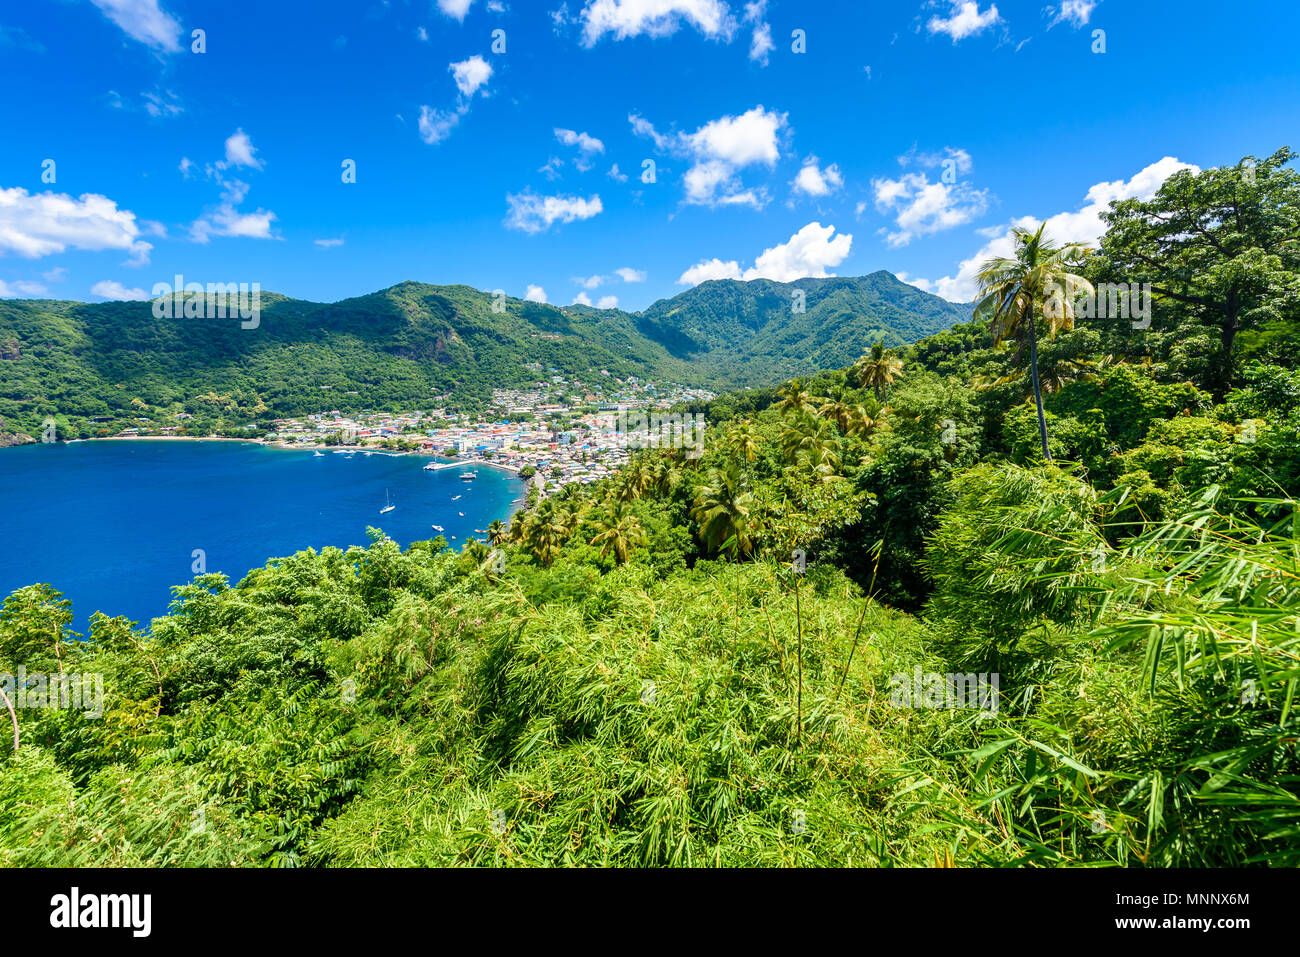 Soufriere Village - tropical coast on the Caribbean island of St. Lucia. It is a paradise destination with a white sand beach and turquoiuse sea. - Stock Image